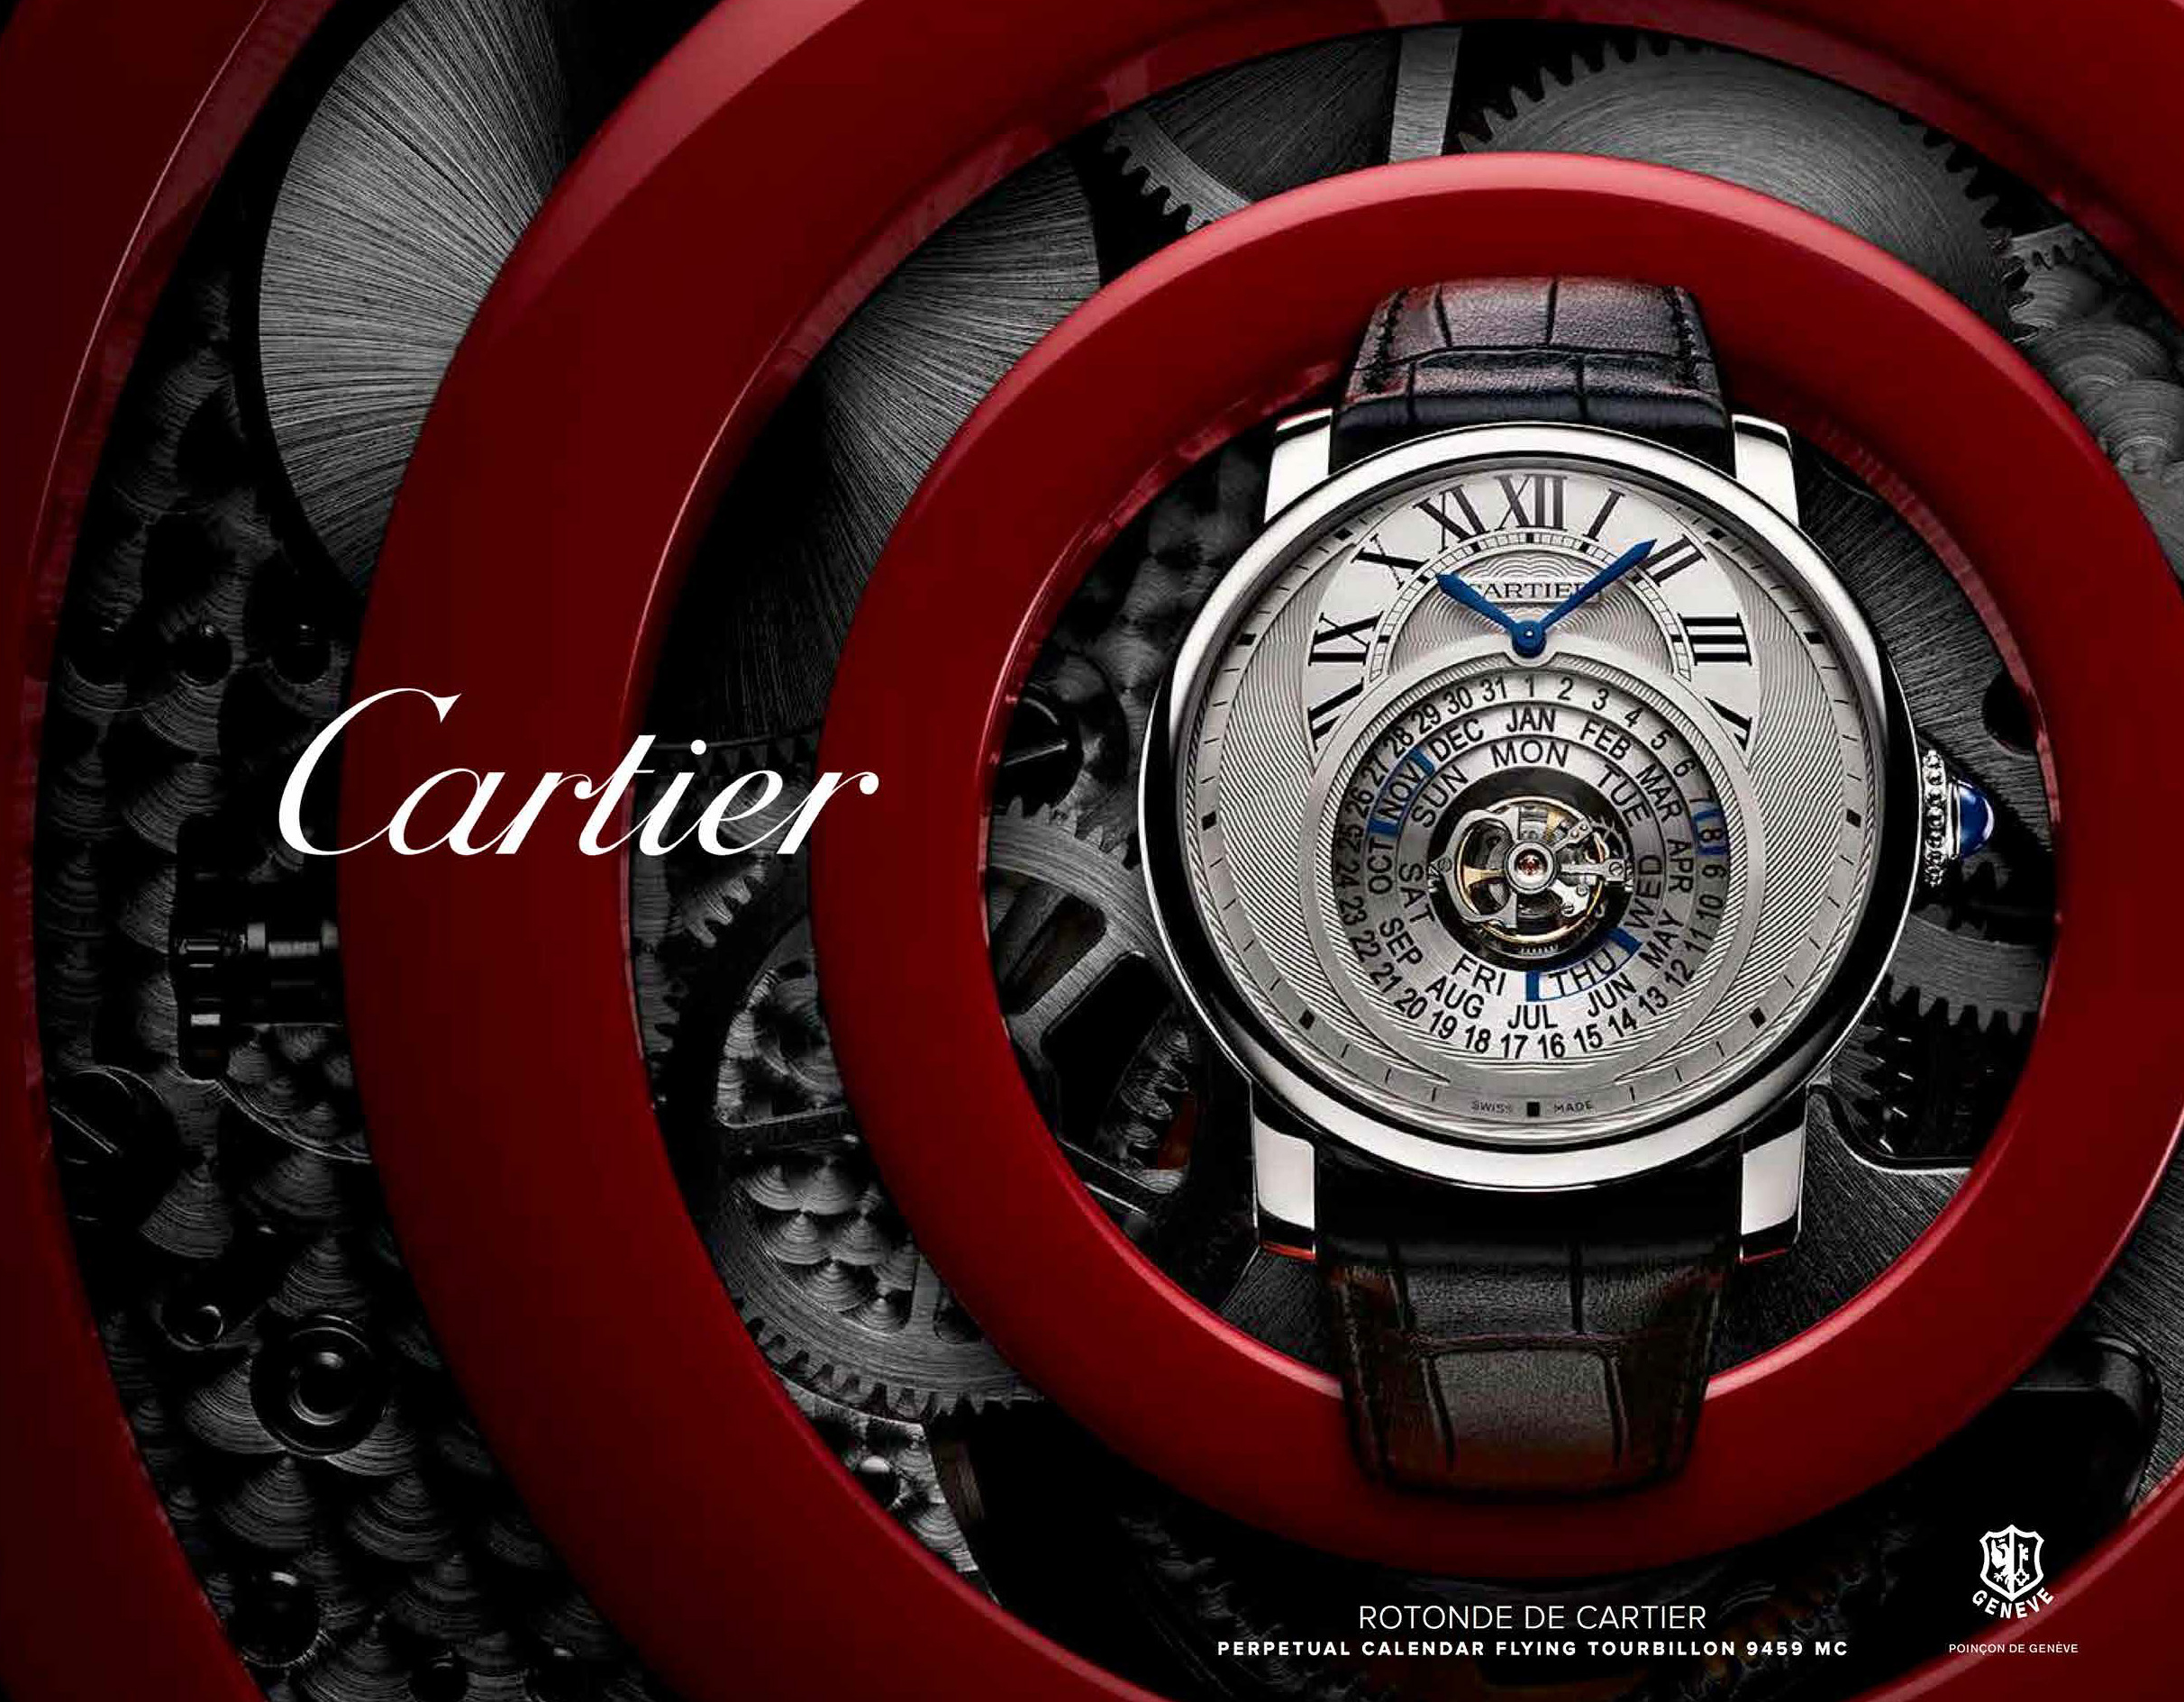 Cartier/photos Mitch Feinberg